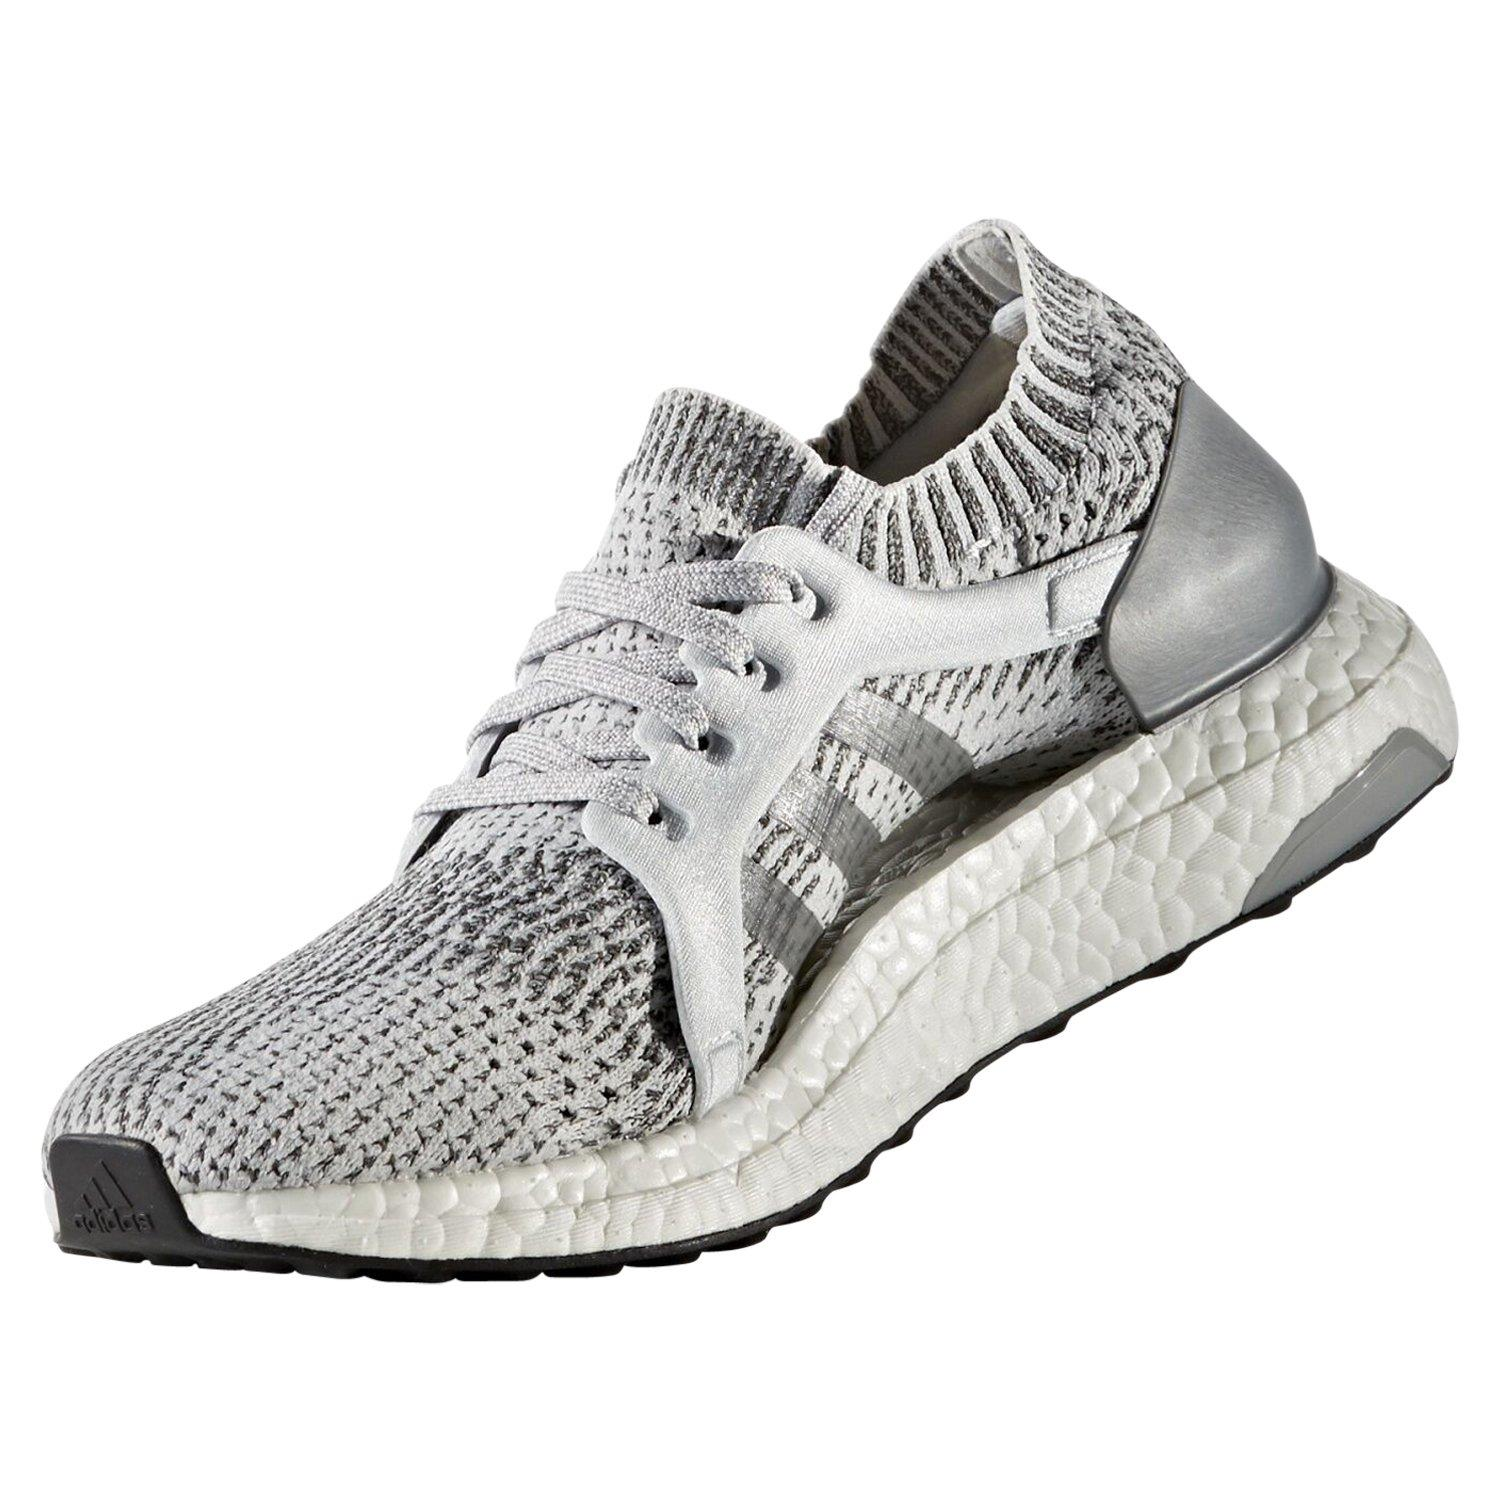 Details zu adidas ULTRA BOOST X RUNNING SHOES GREY PRIMEKNIT COMFORTABLE LADIES WOMENS